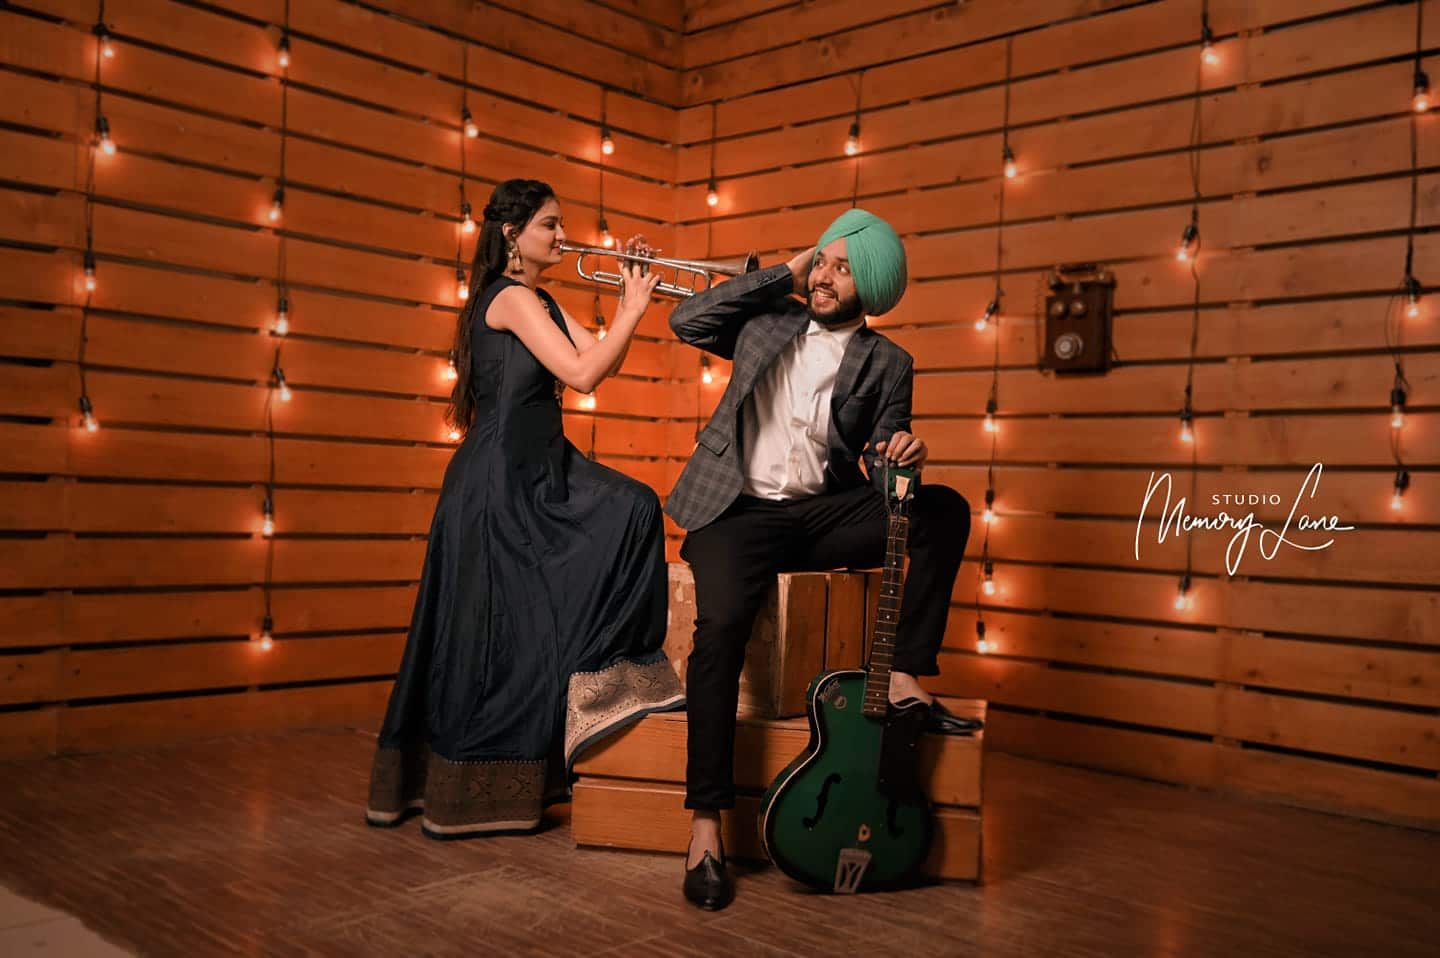 Chandigarh Photography Studio | Musical Chemistry of love!